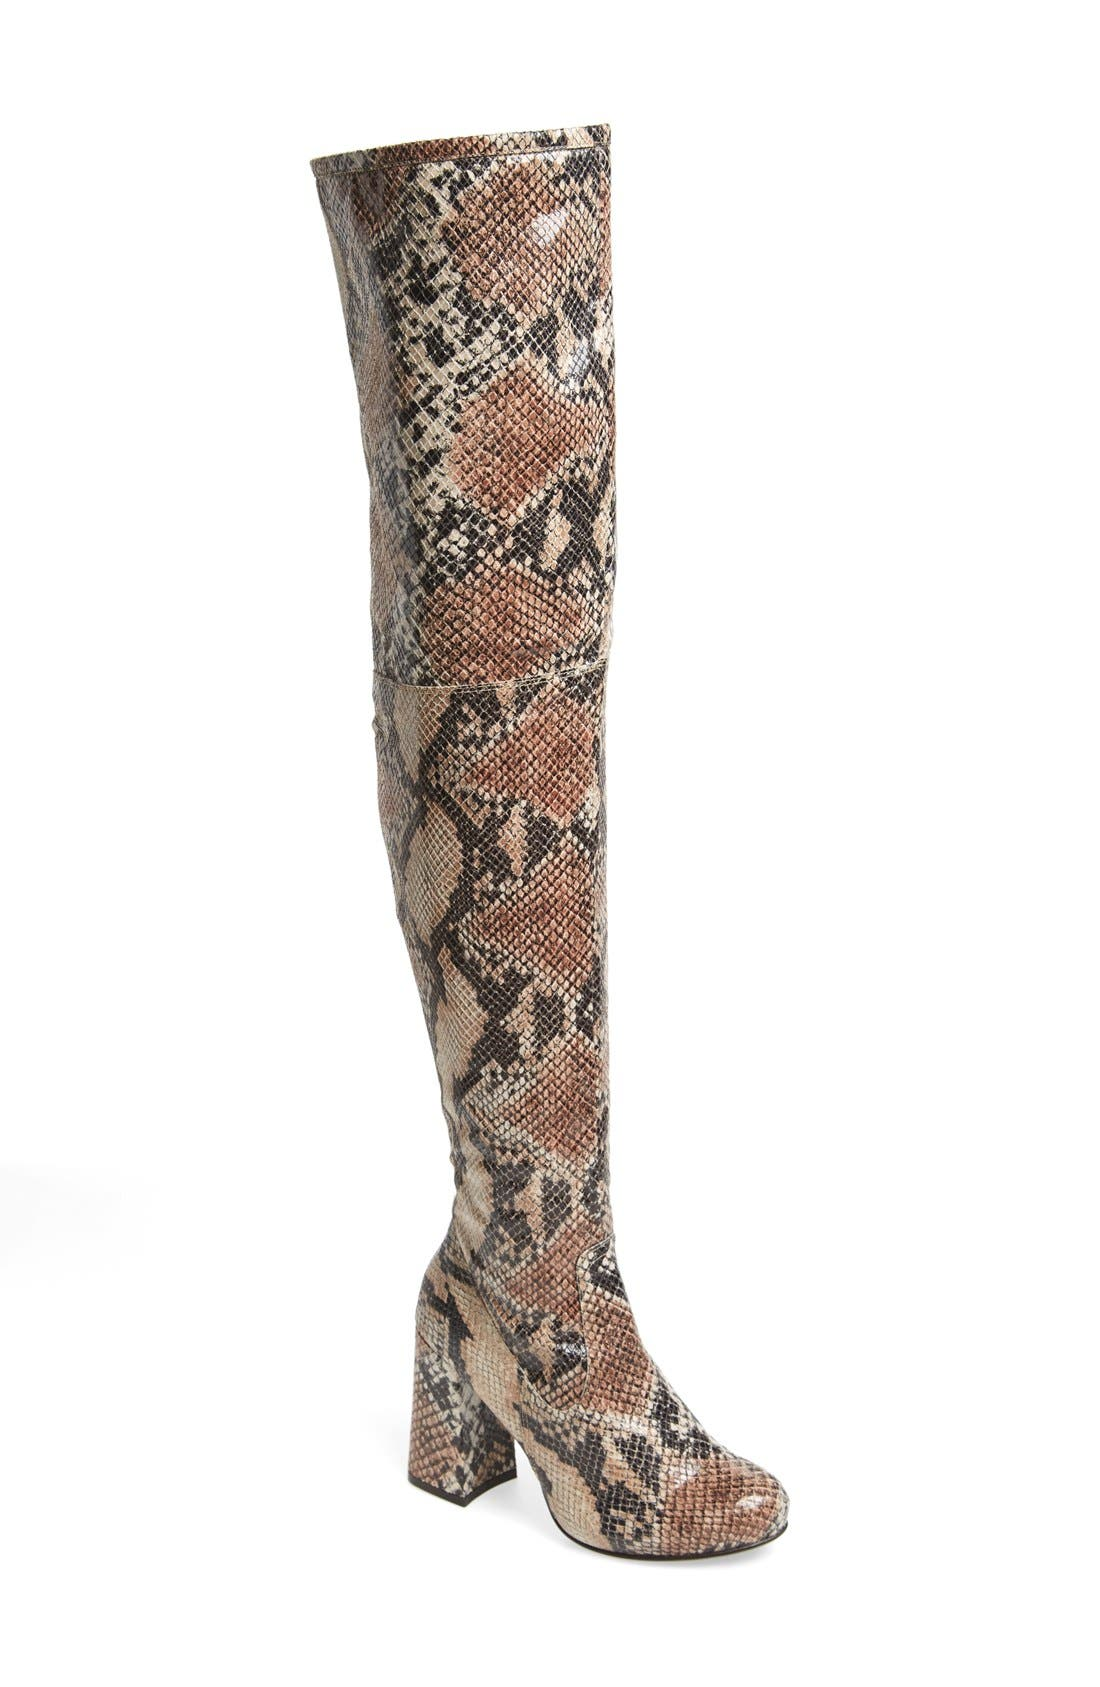 Alternate Image 1 Selected - Shellys London 'Kay' Over the Knee Boot (Women)